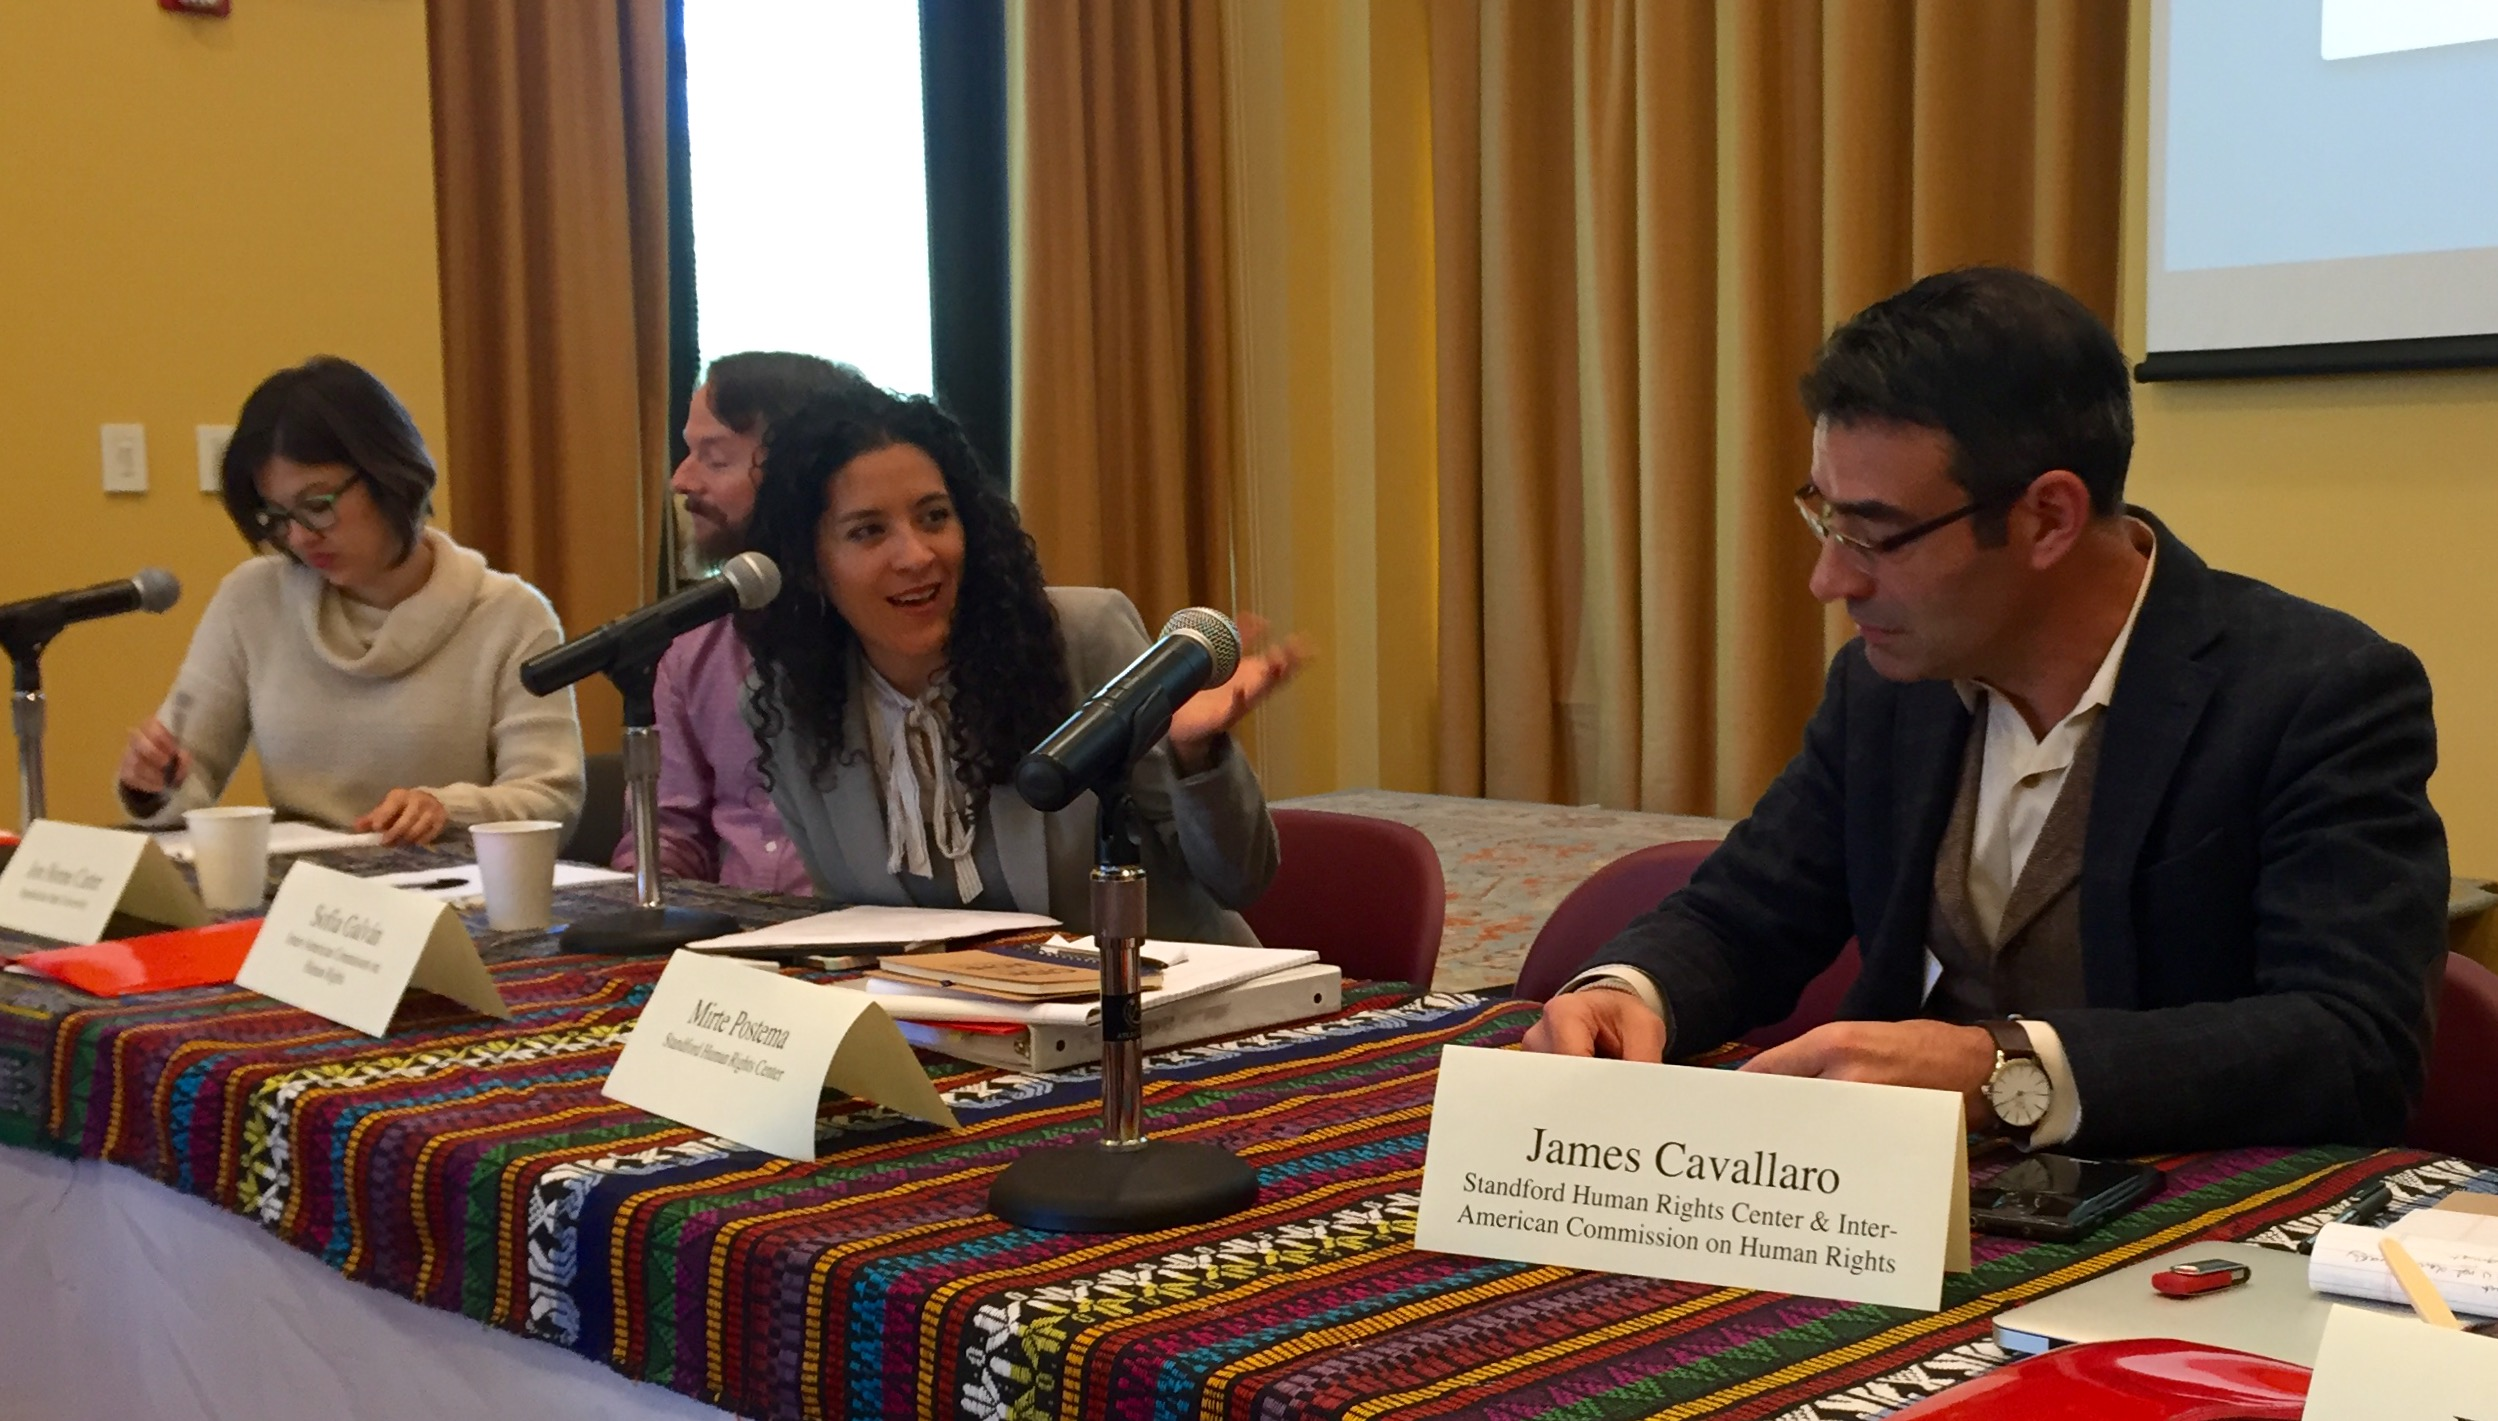 Symposium Carceral Worlds and Human Rights across the Americas